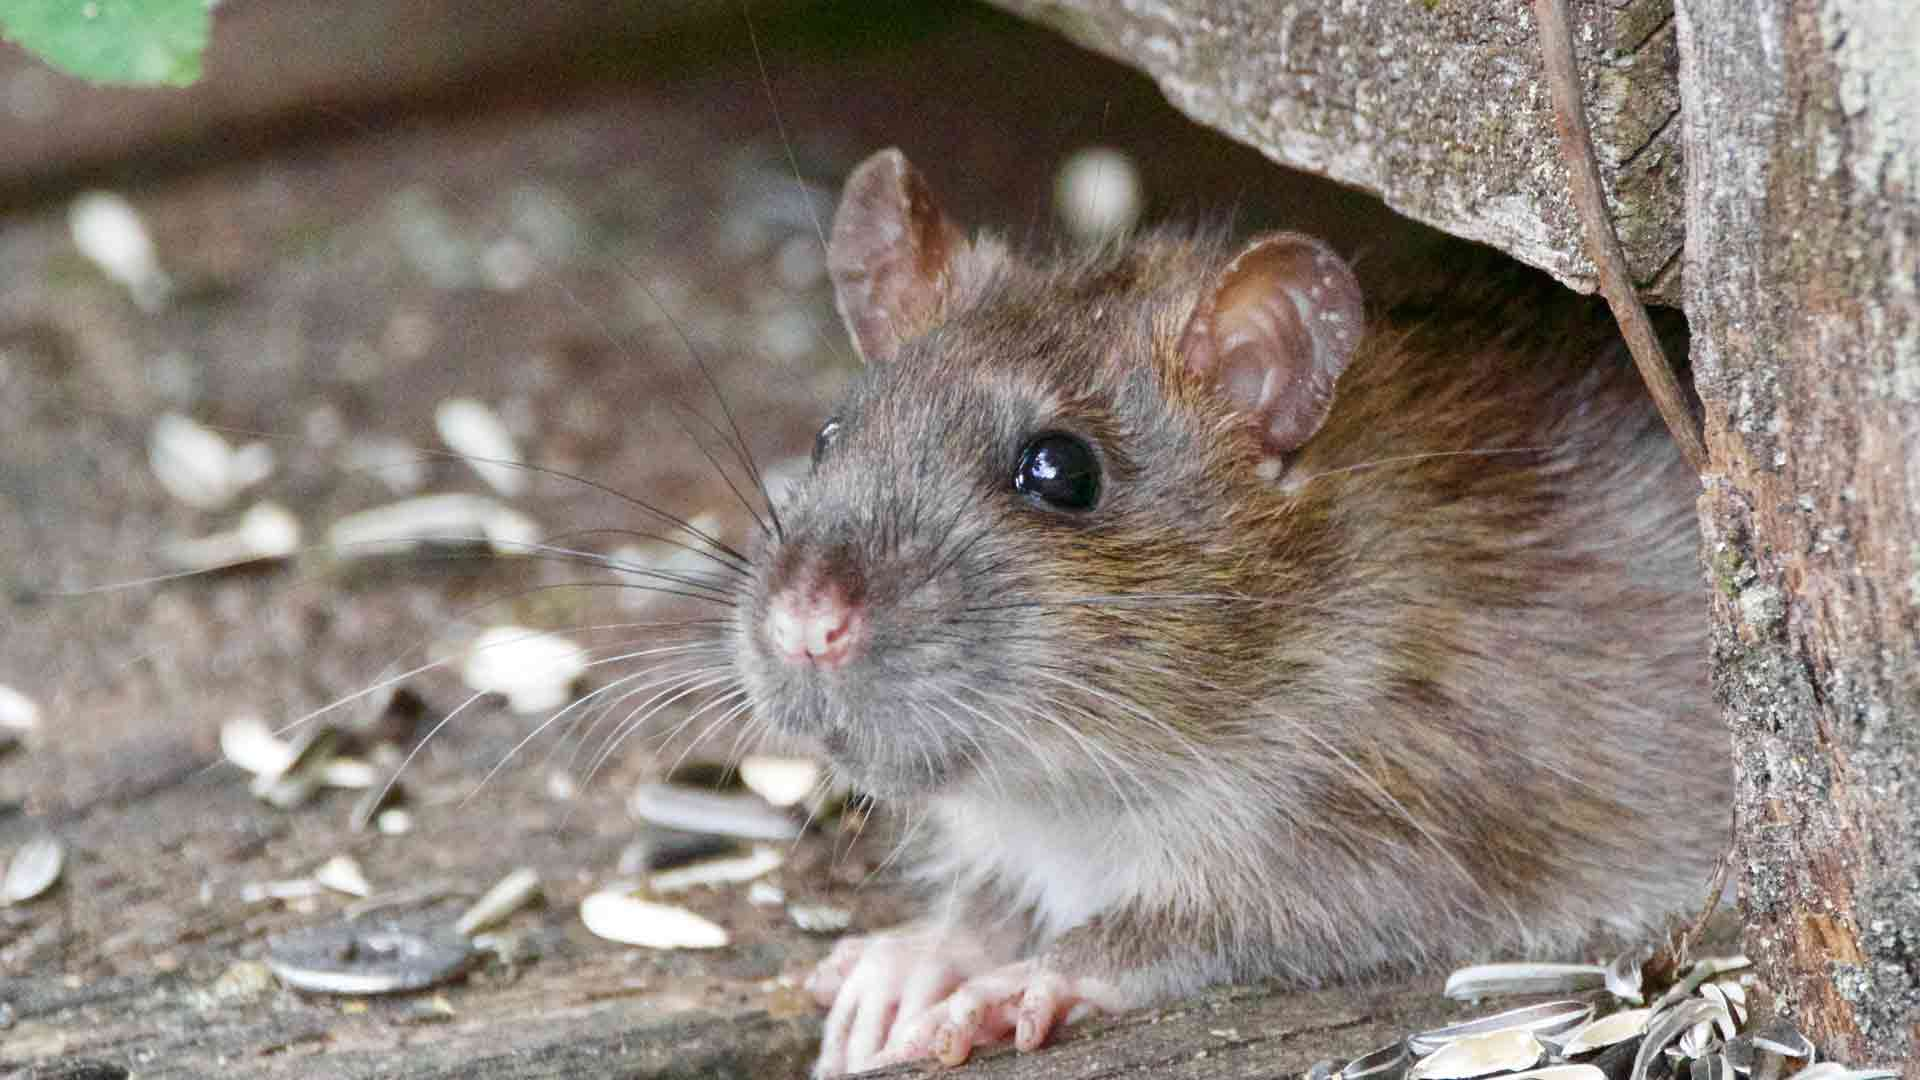 a mouse in a home that will be captured by a rodent control company